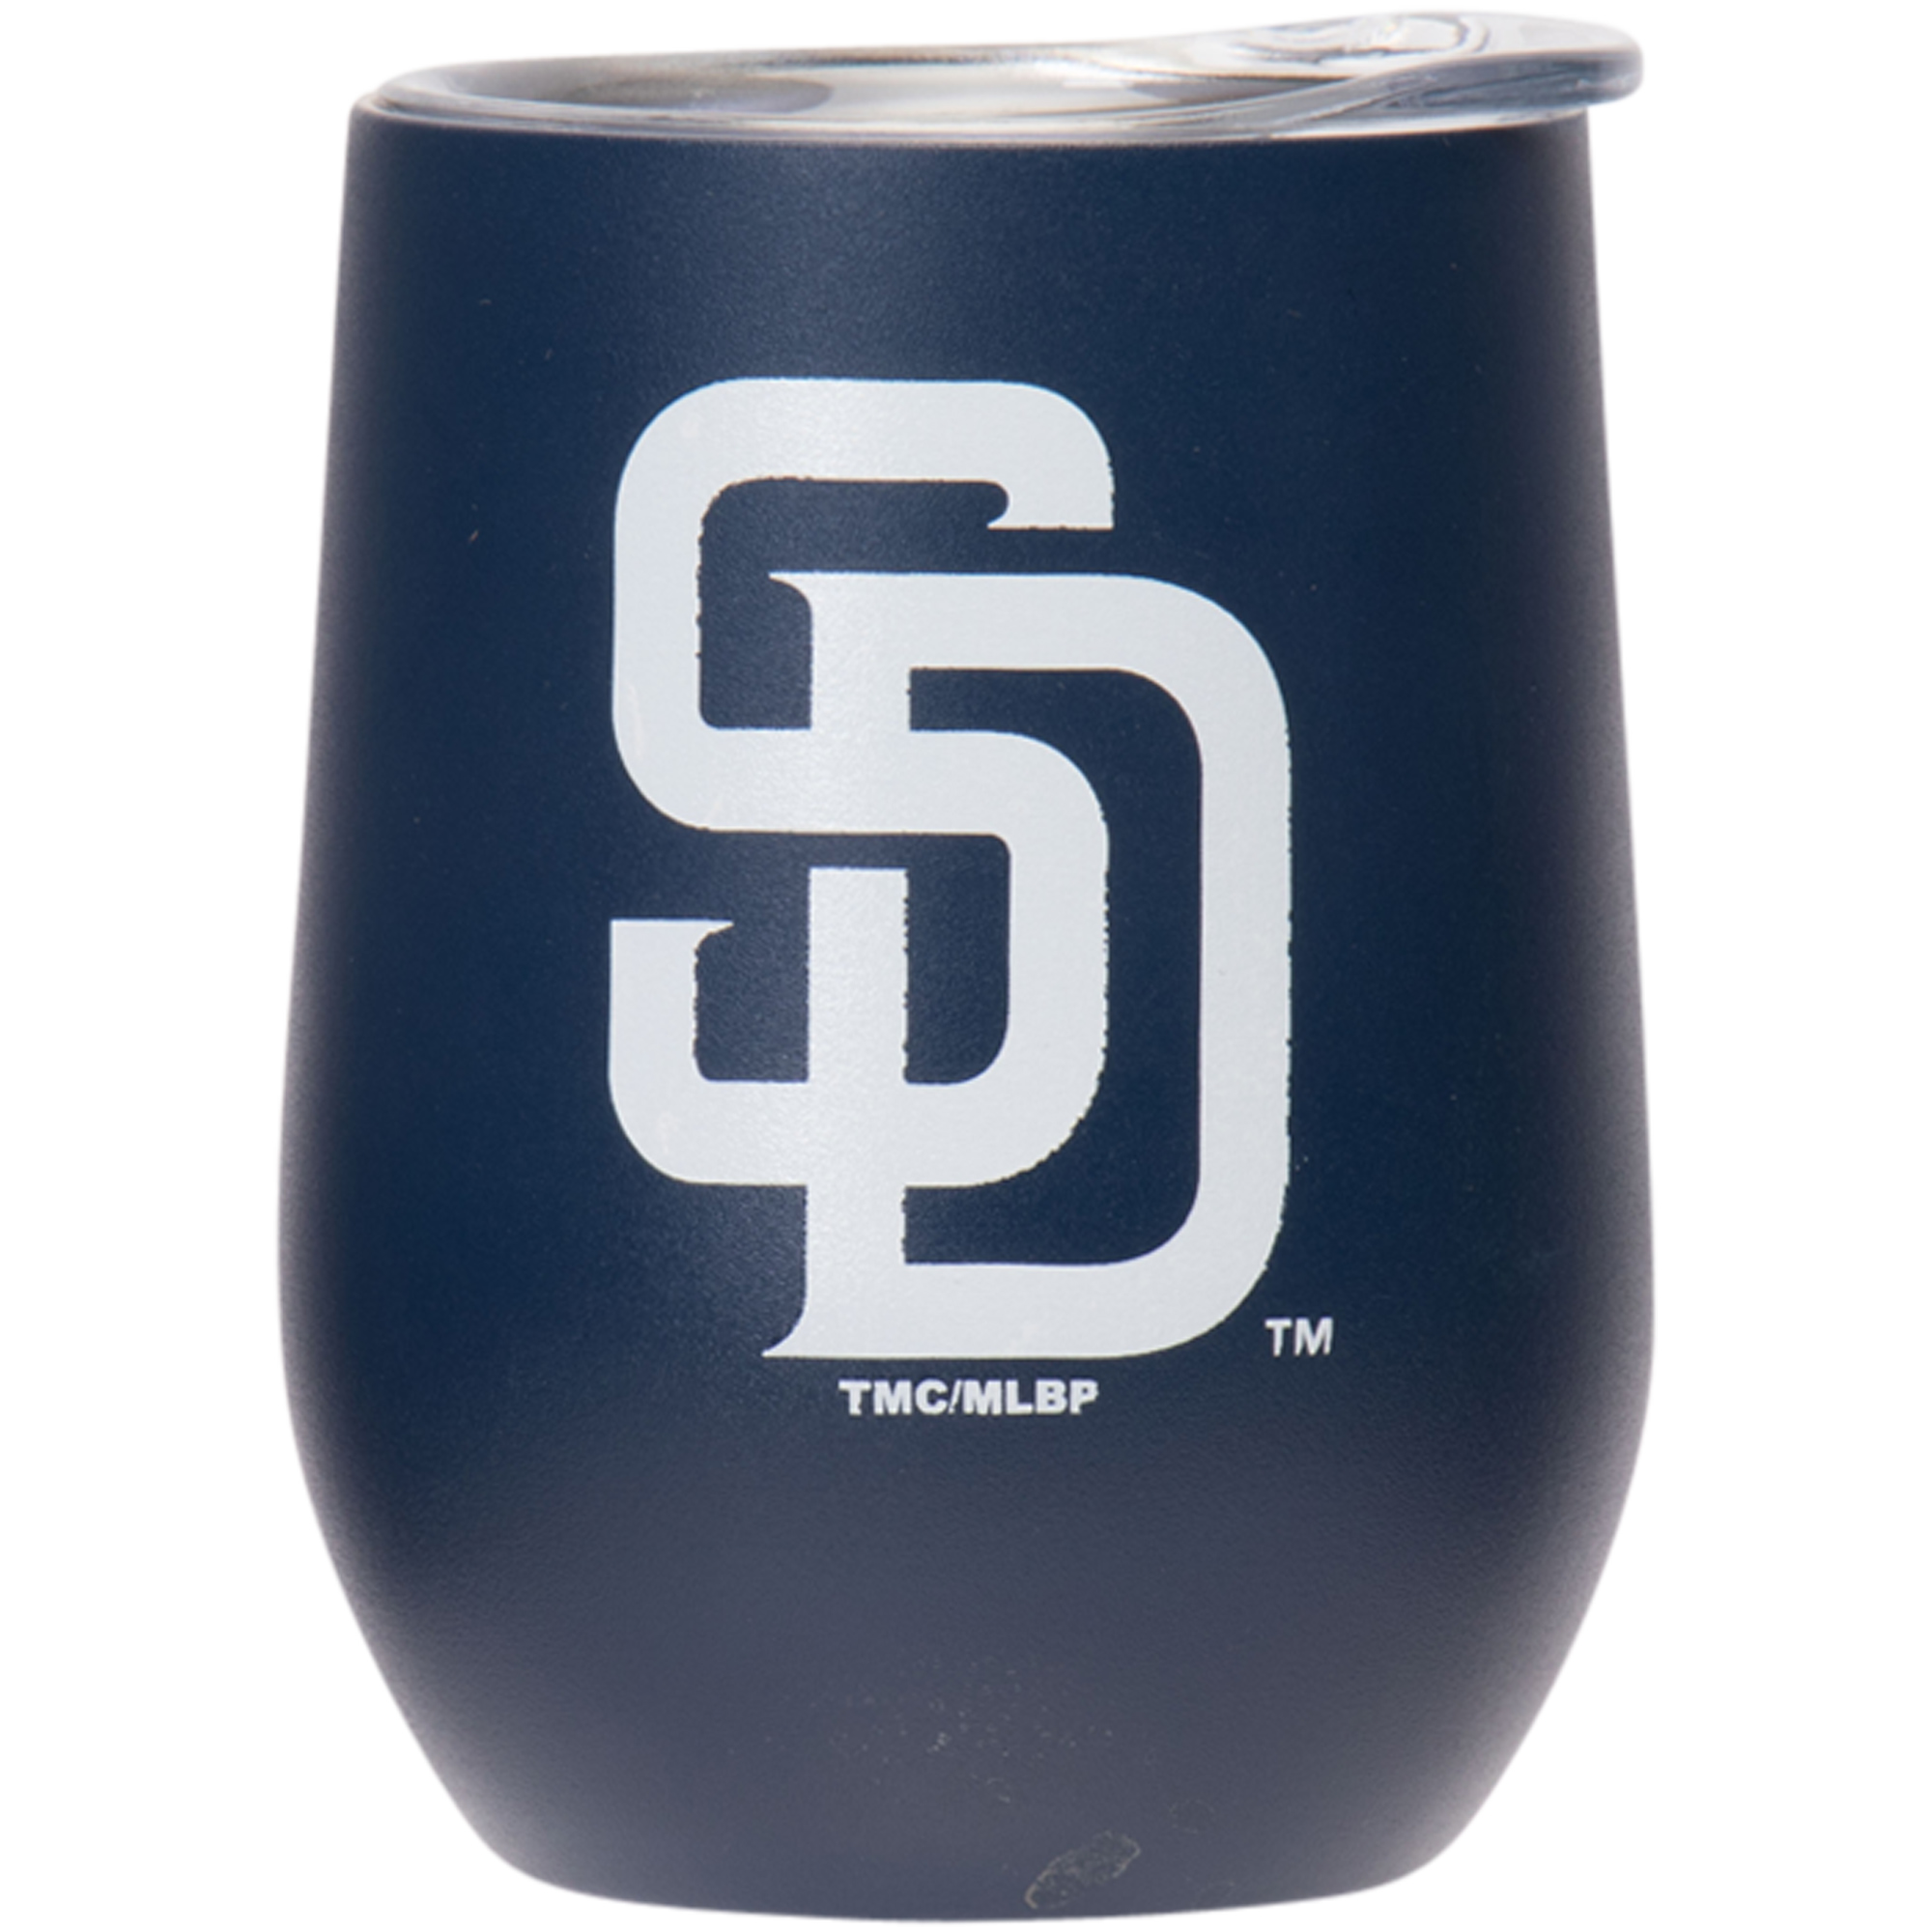 San Diego Padres 15oz. Matte Stainless Steel Stemless Tumbler - No Size